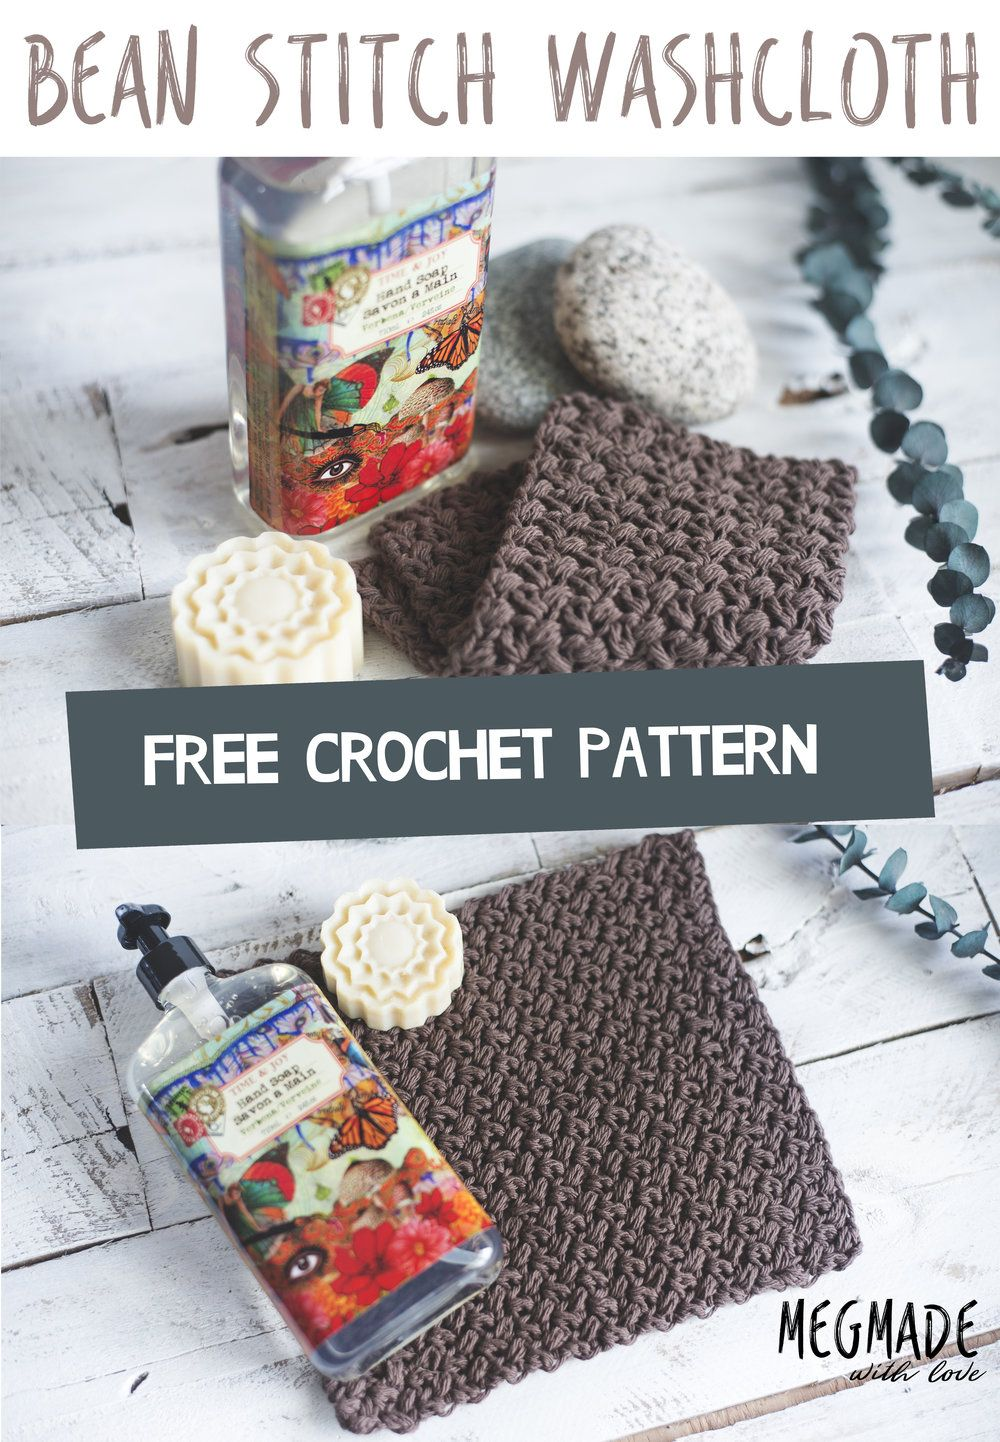 Free Crochet Pattern - Rustic Bean Stitch Washcloth - Megmade with ...